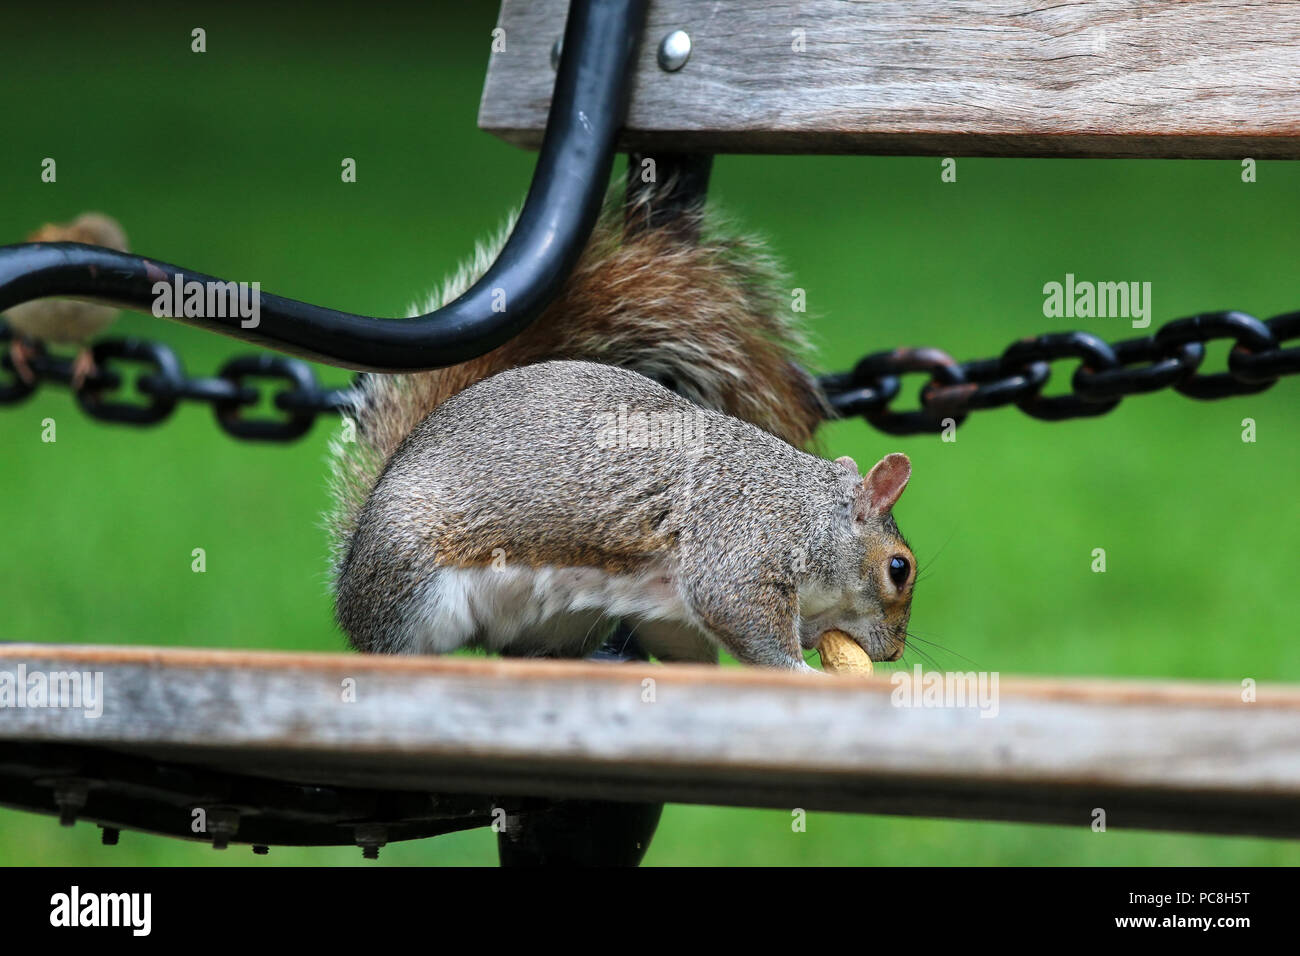 NEW YORK, NY - JULY 10: Squirrel holds a peanut on a bench in Washington Square Park in Manhattan on JULY 10th, 2017 in New York, USA. Stock Photo